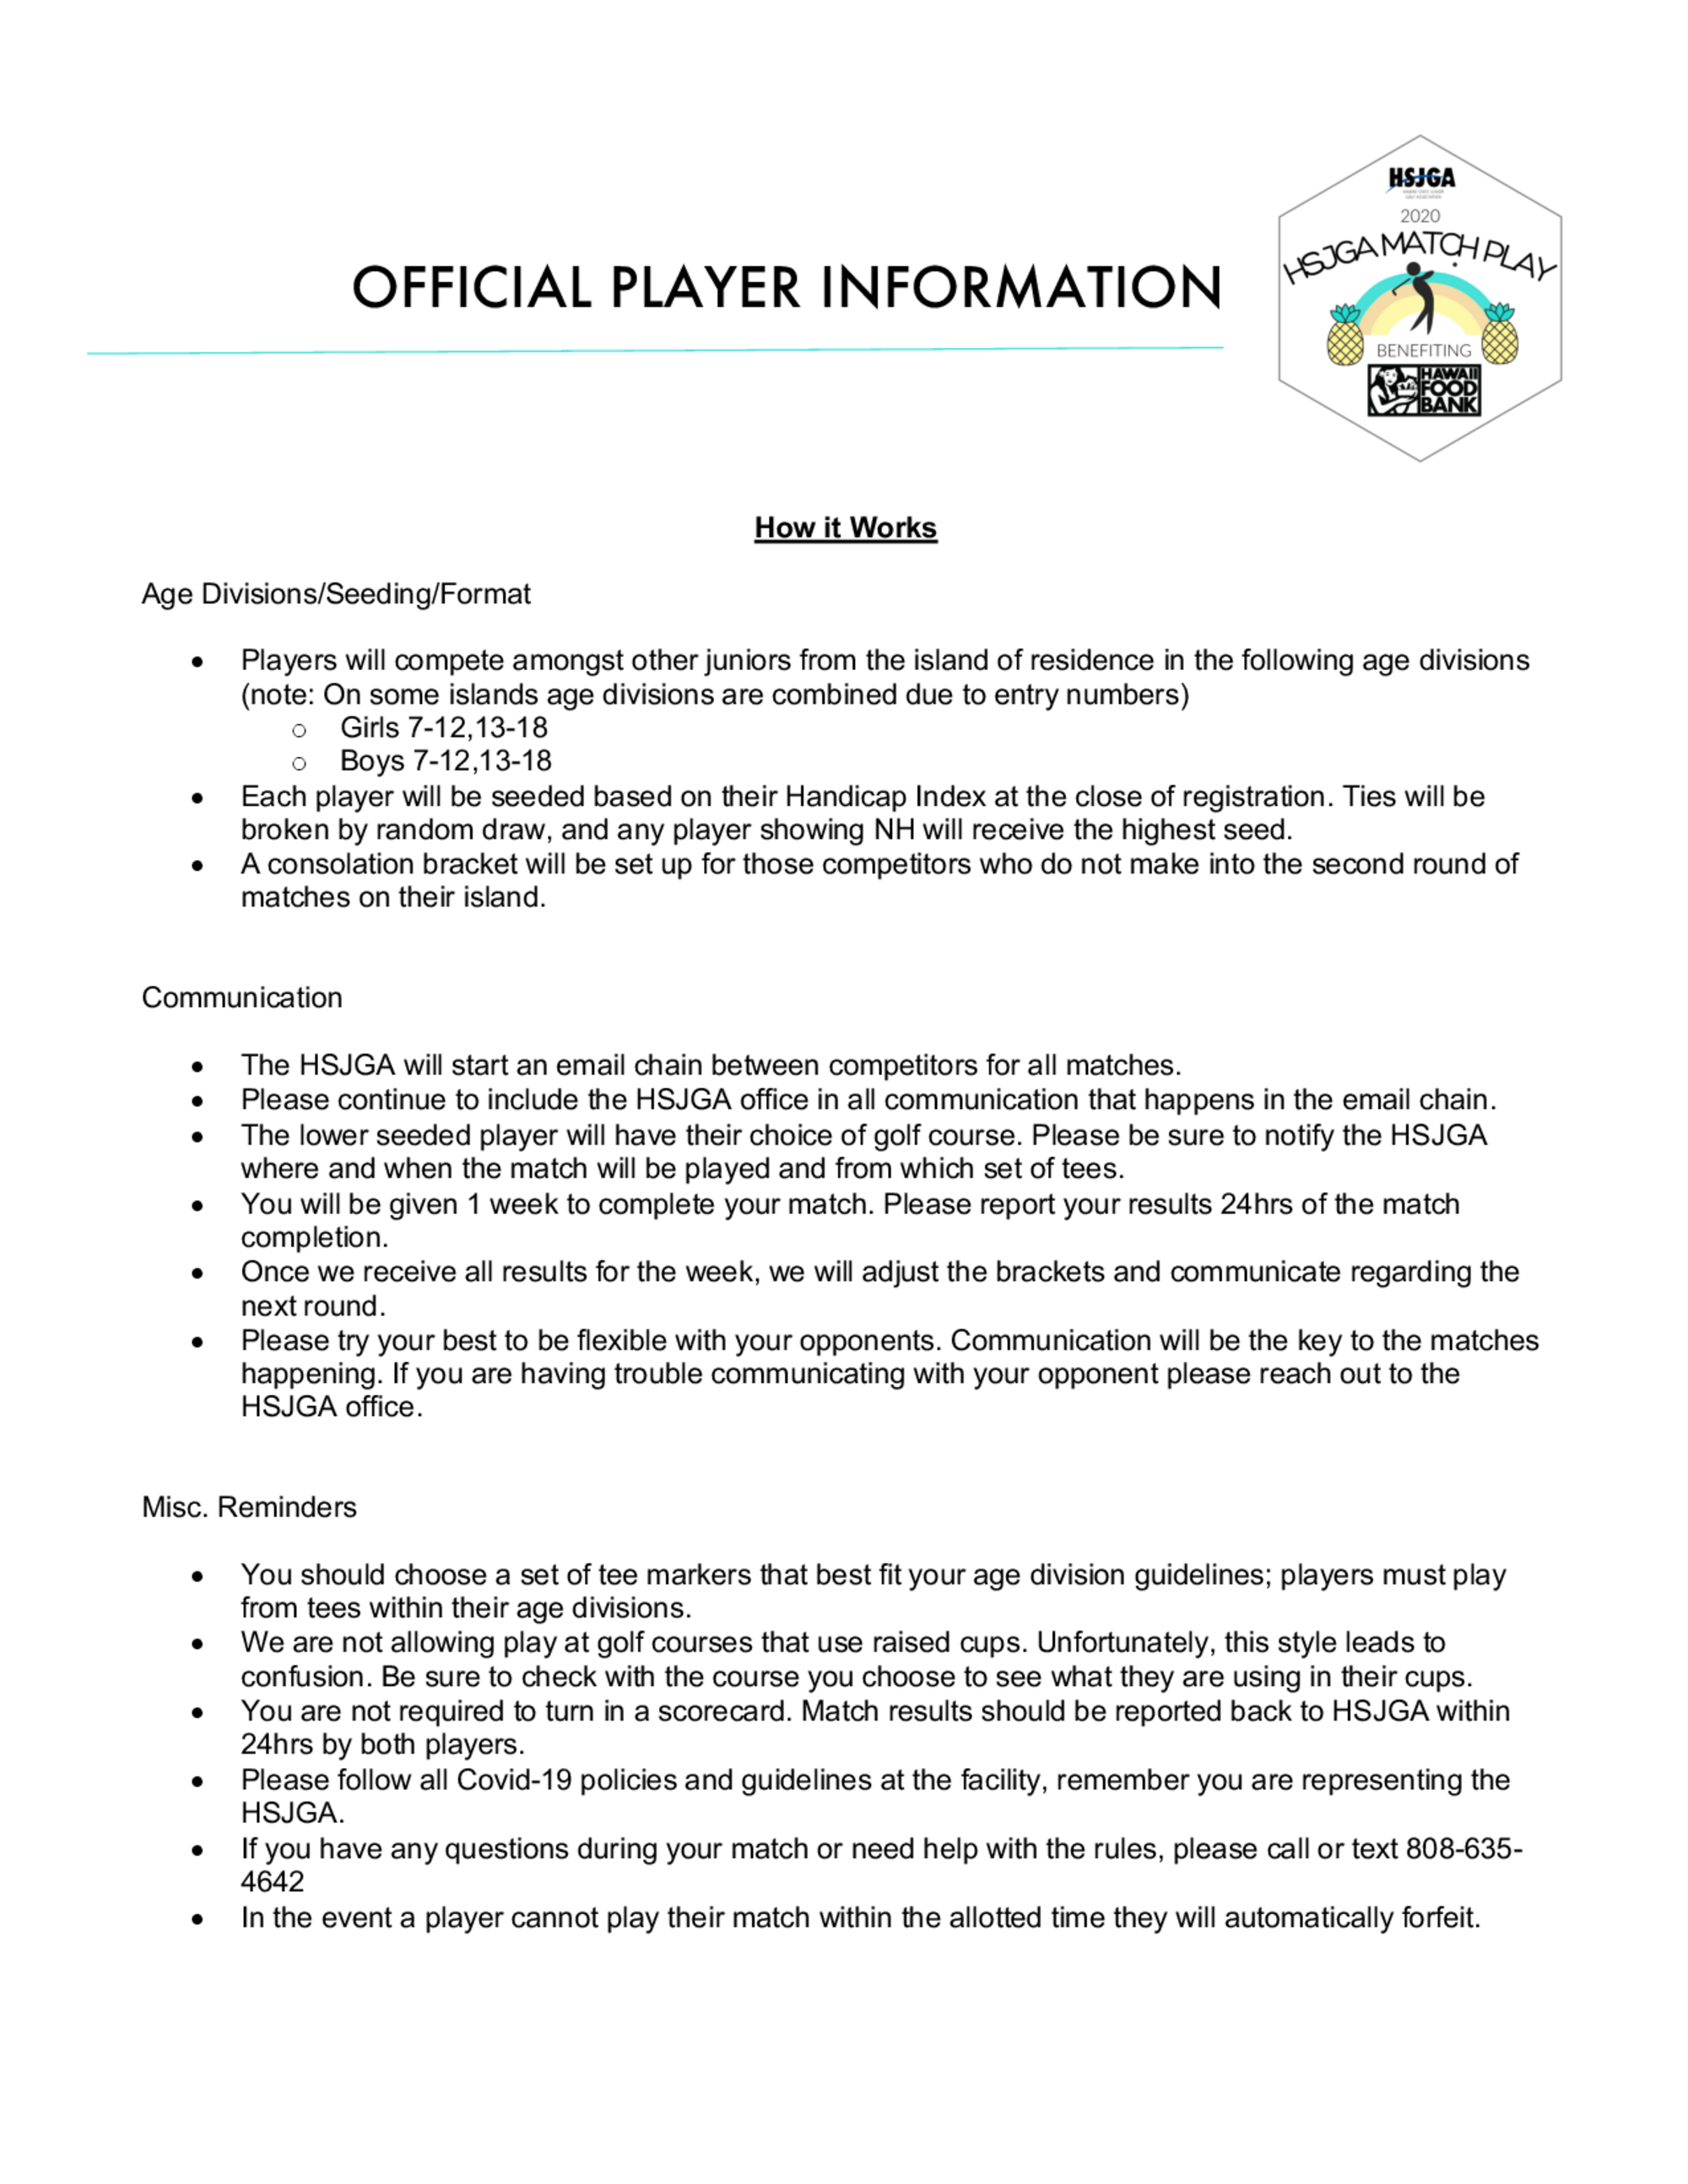 2020 match play player packet fnl 4